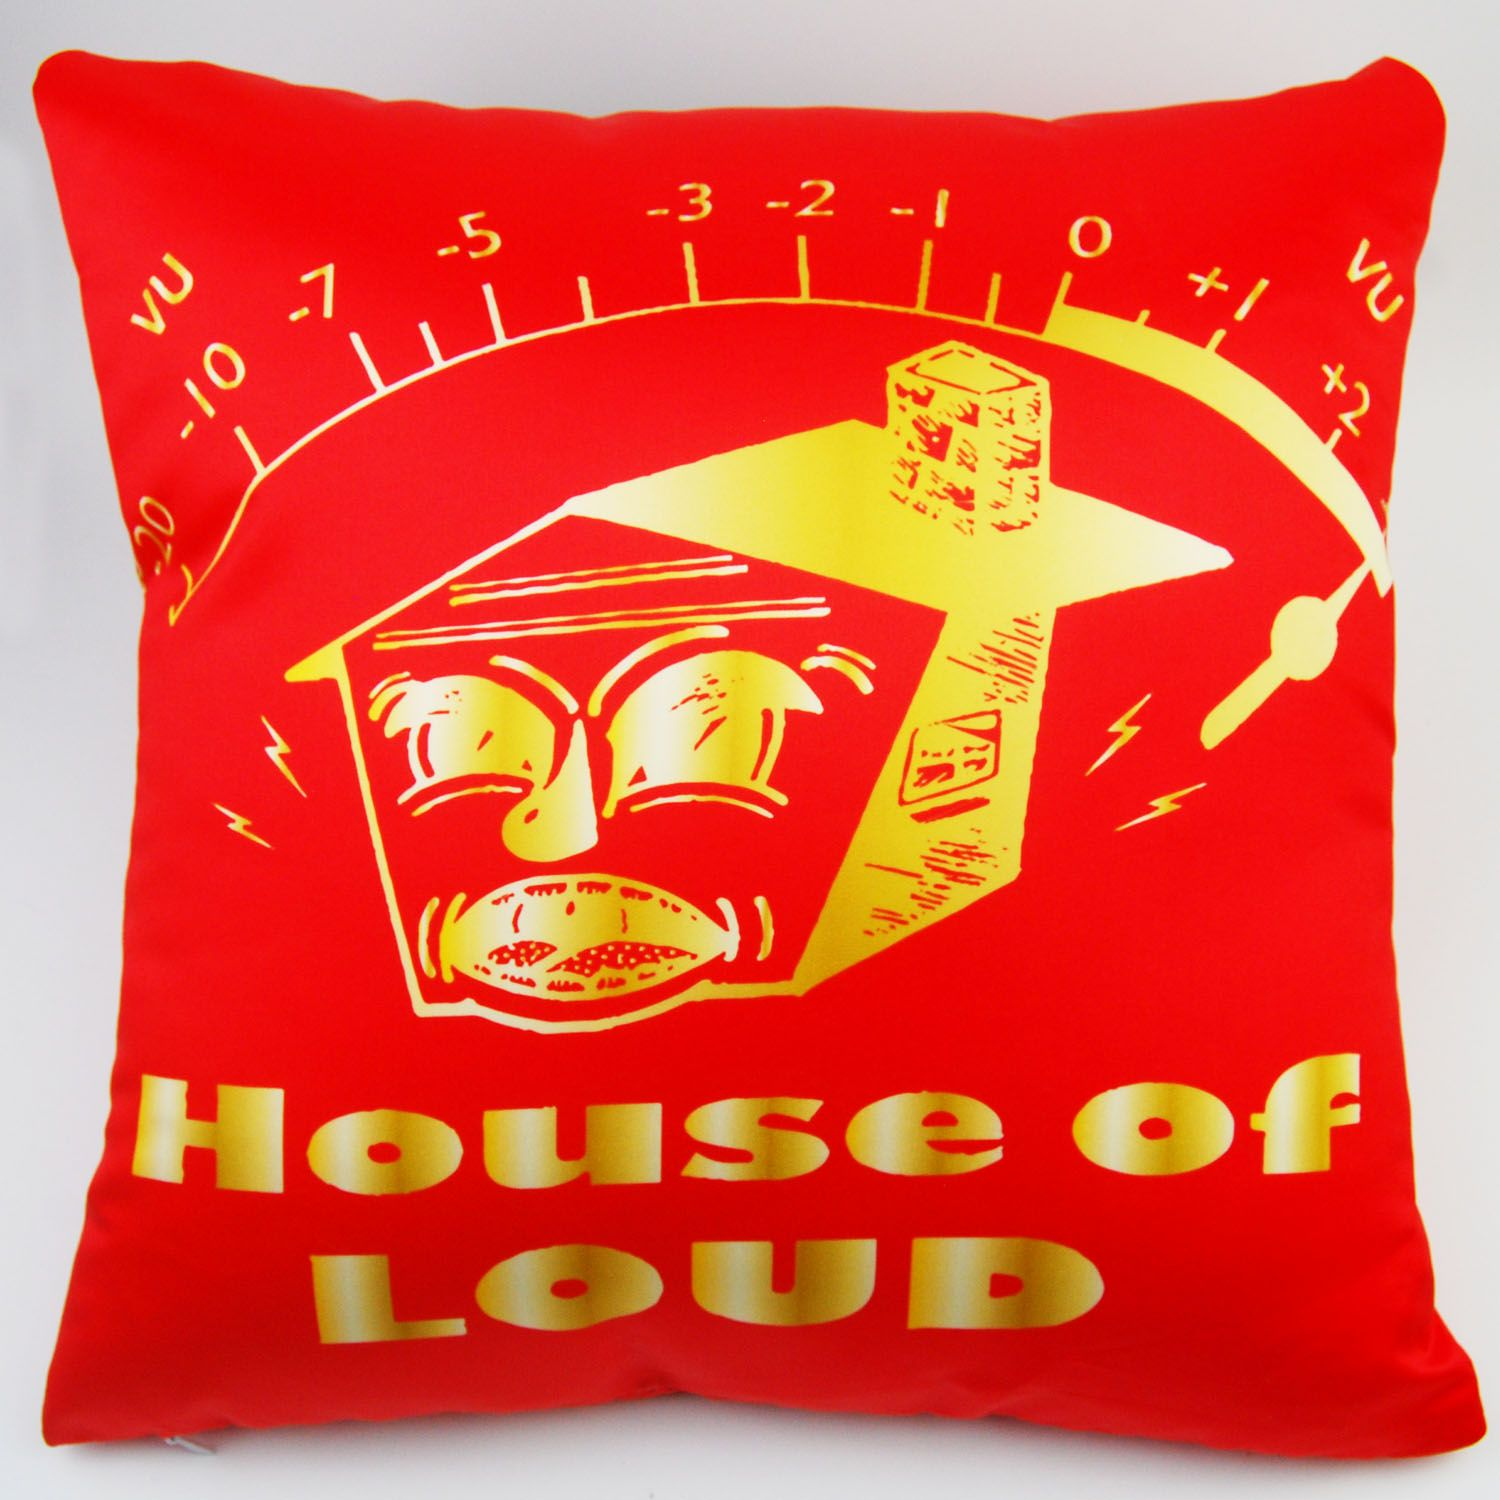 House Of Loud Thank You So Much For Your Custom Pillow Order We Are Committed